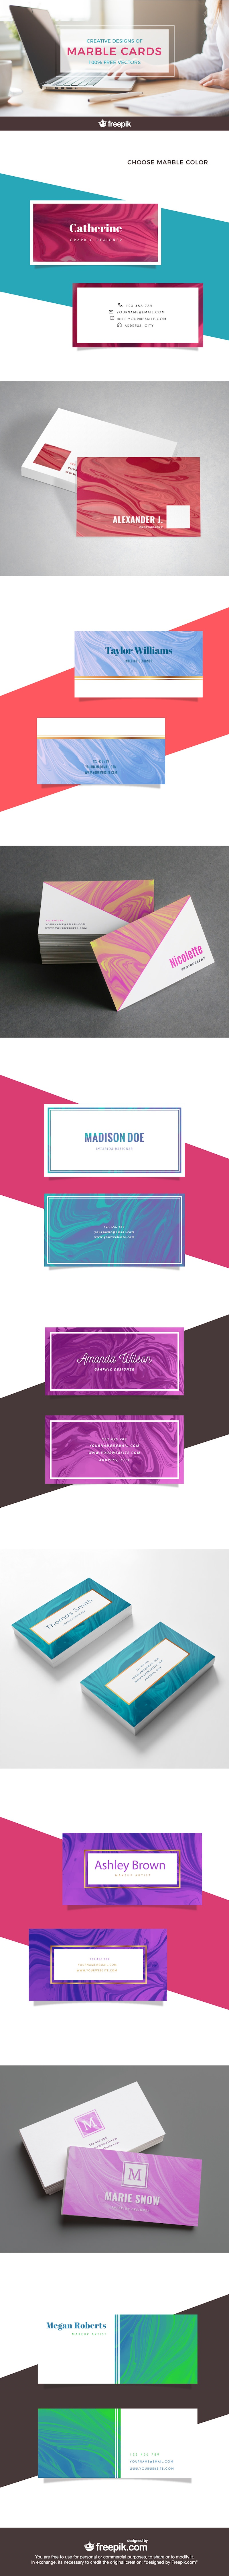 free marble business card templates